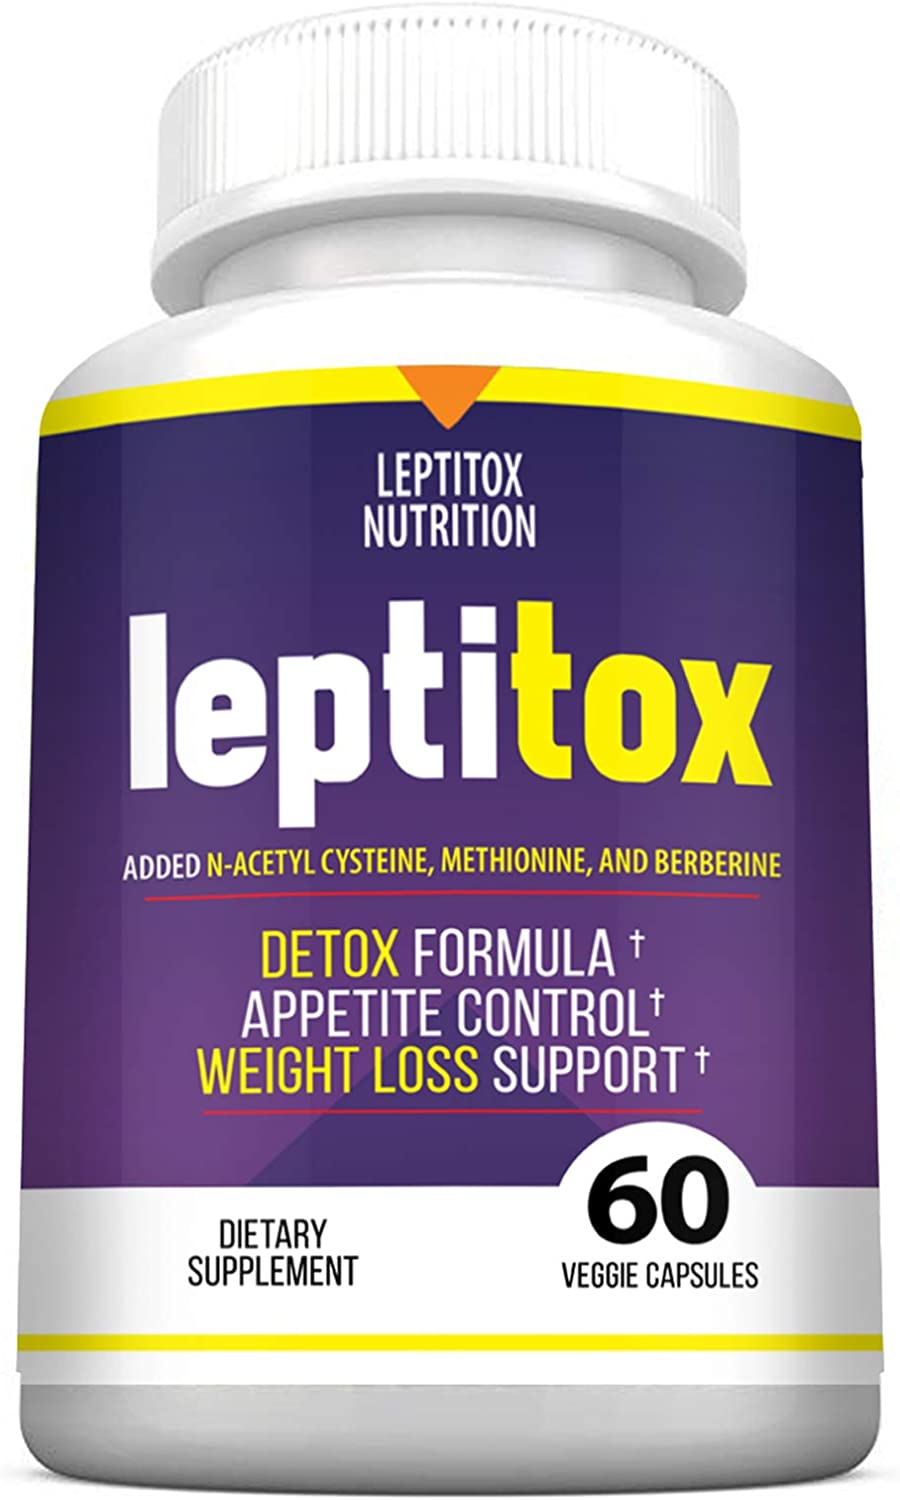 Leptitox Warranty 7 Years